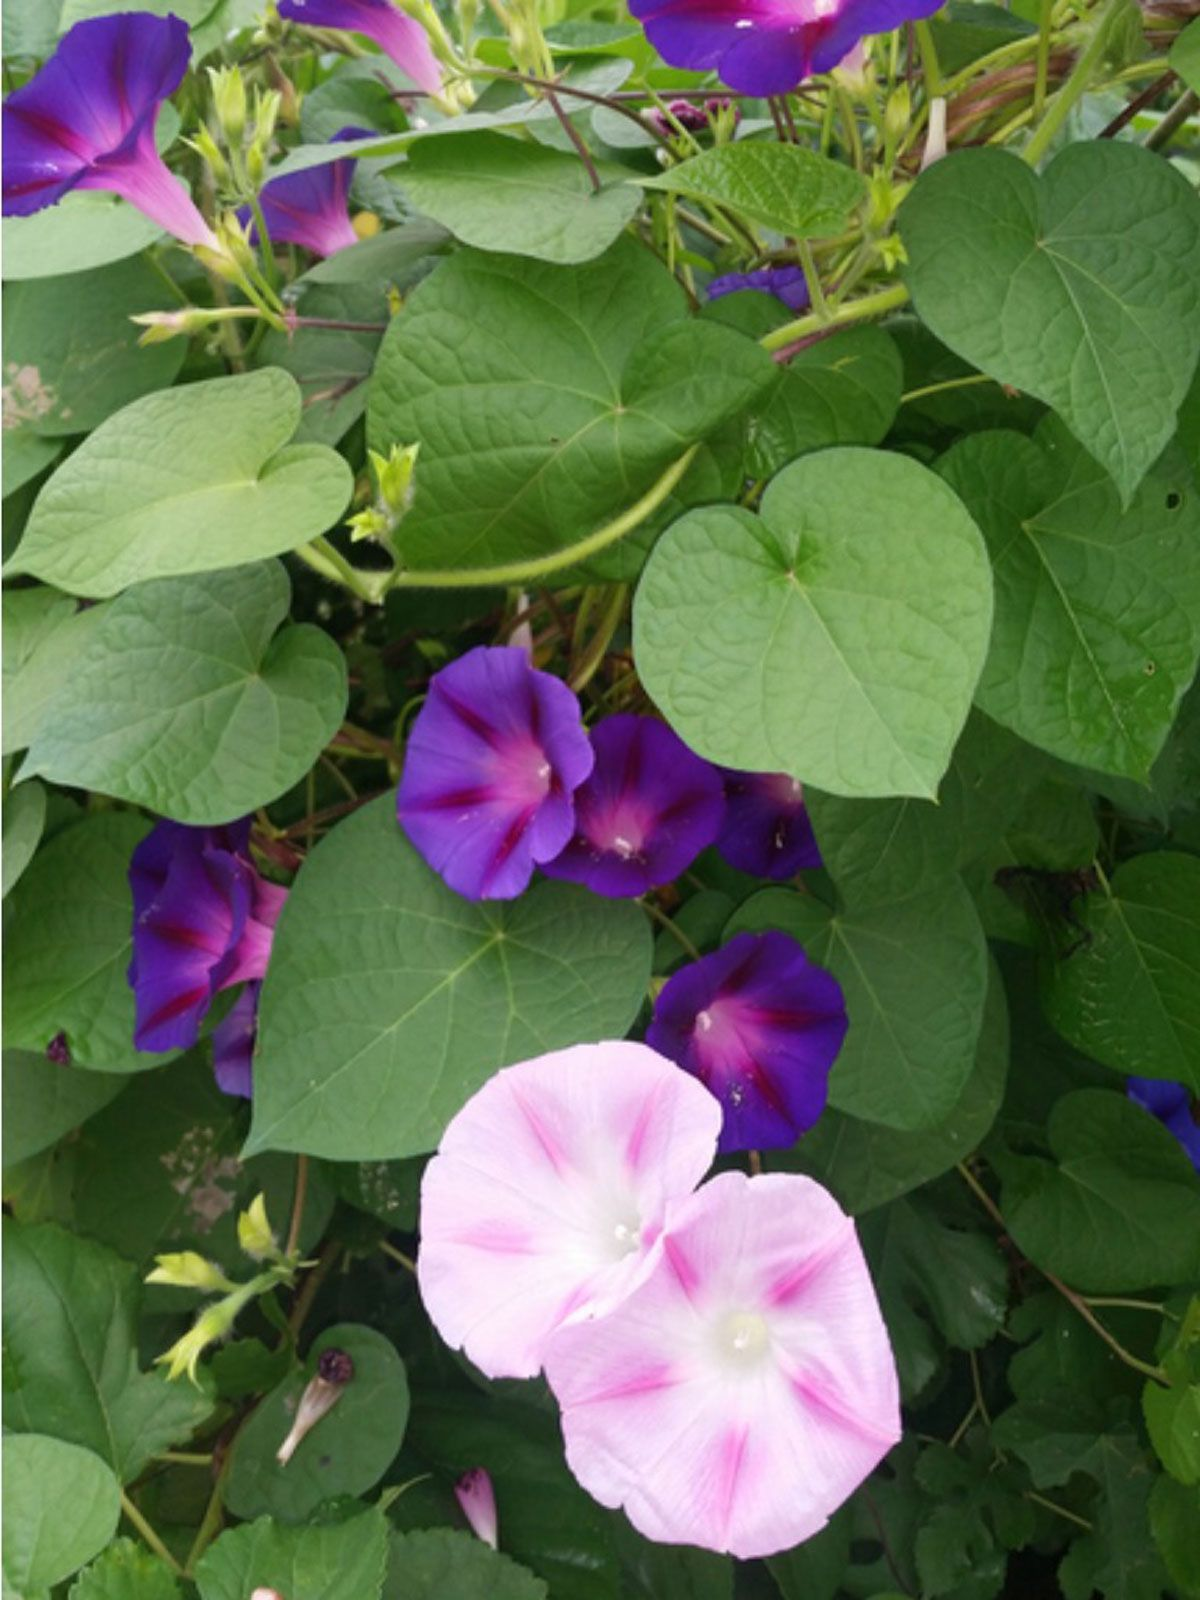 Morning Glory Trimming When And How To Prune Morning Glory Plants In 2020 Morning Glory Vine Morning Glory Flowers Morning Glory Plant